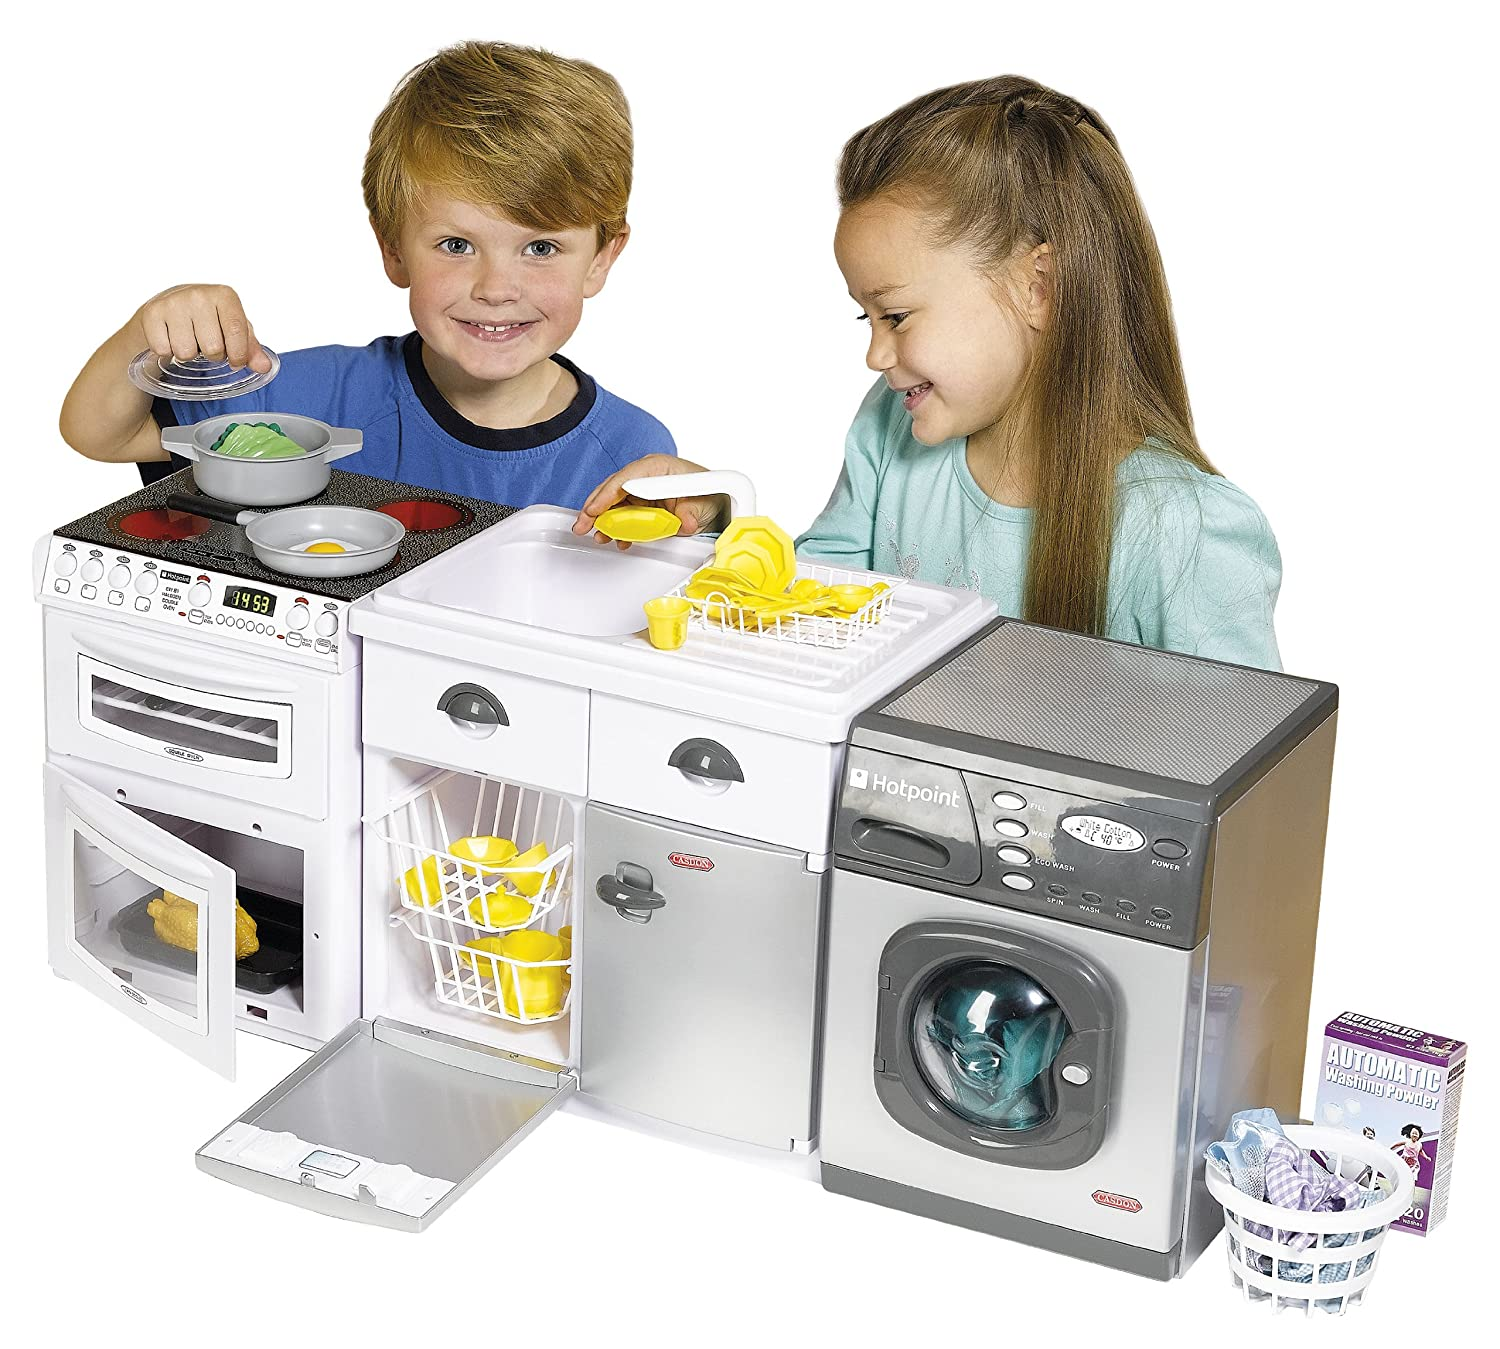 Casdon 477 White Toy Electronic Cooker: Casdon: Amazon.co.uk: Toys ...